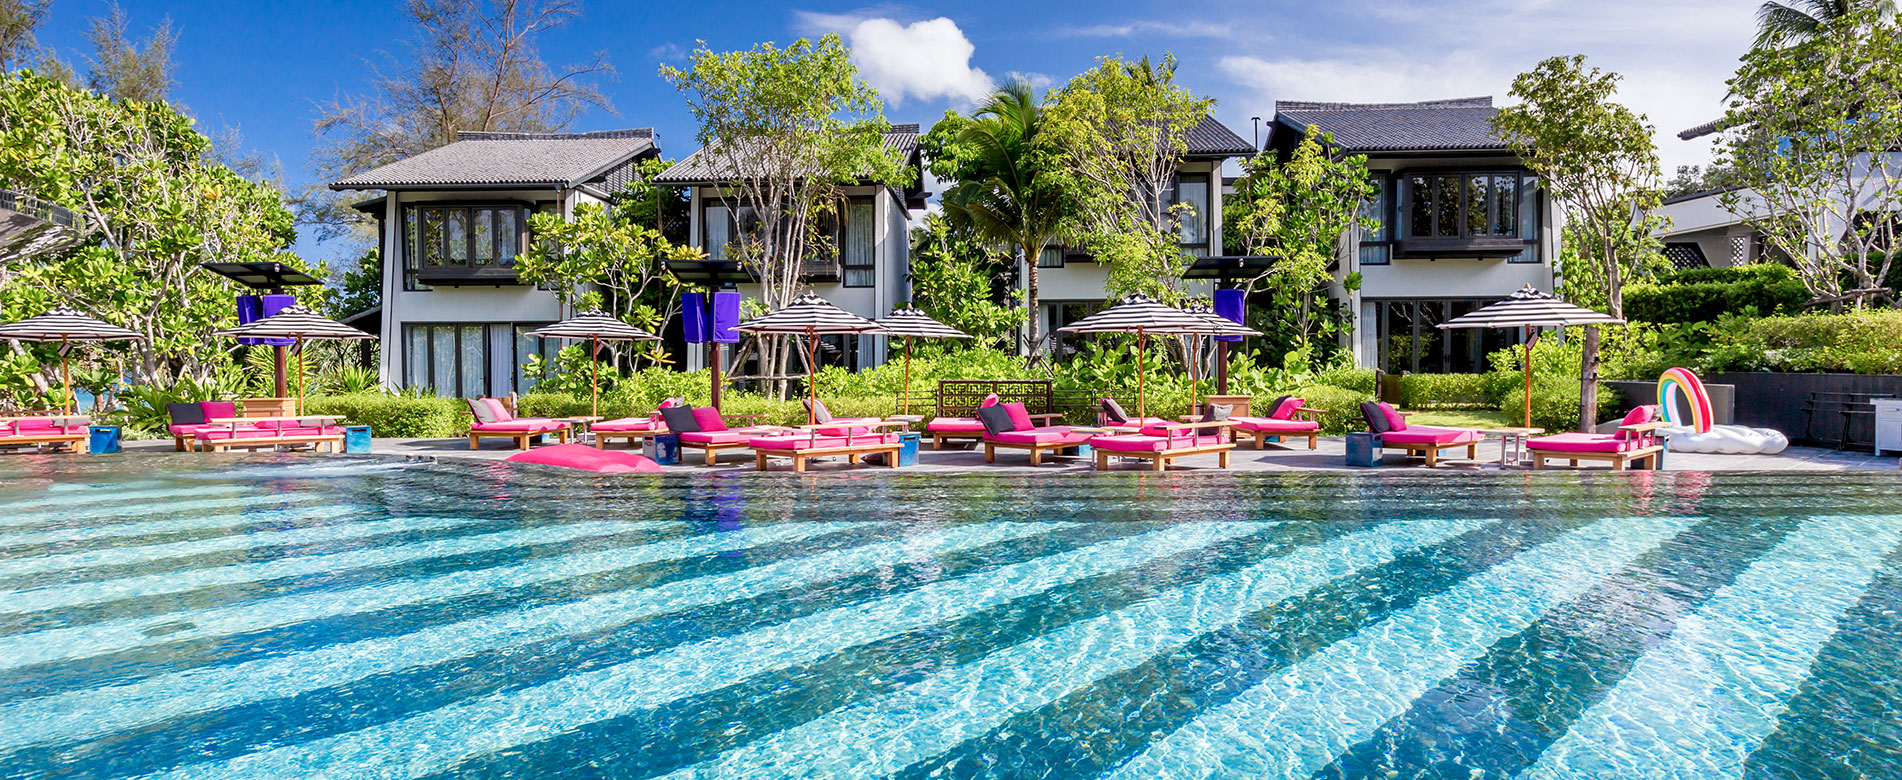 6-Facilities-Baba-Beach-Club-Luxury-Hotel-Phuket-by-Sri-Panwa